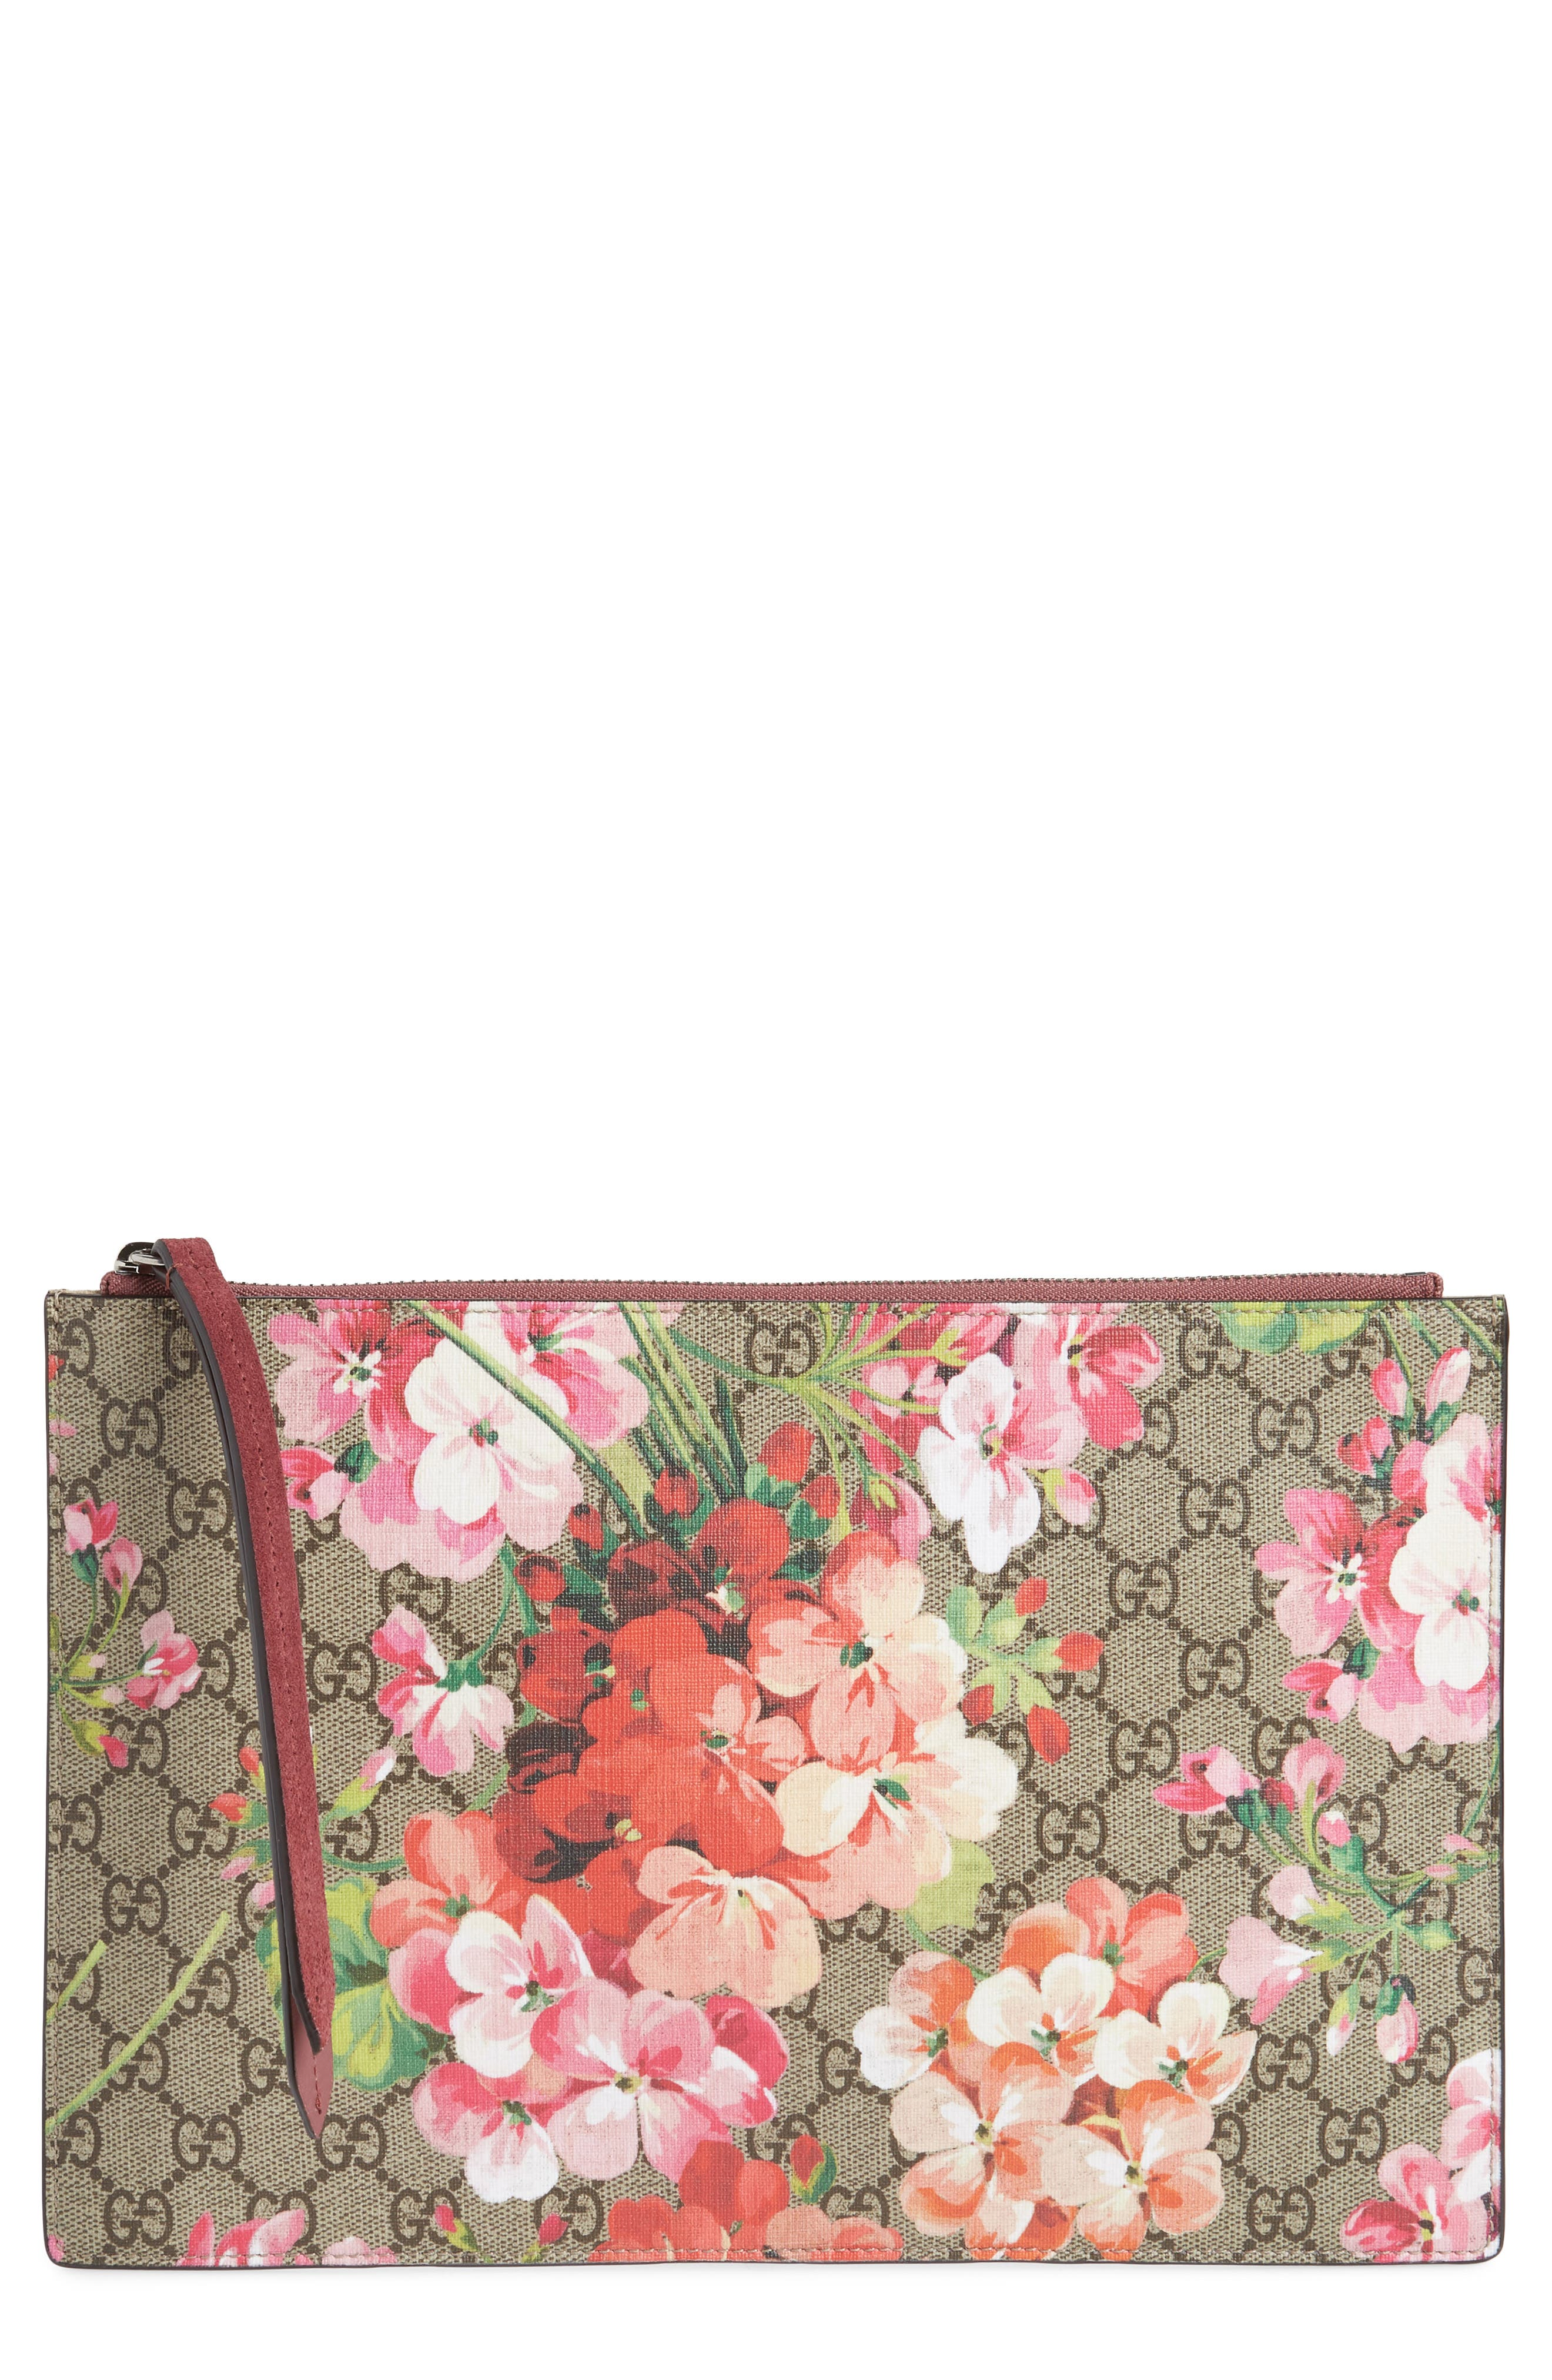 GG Blooms Large Canvas & Suede Pouch,                         Main,                         color,